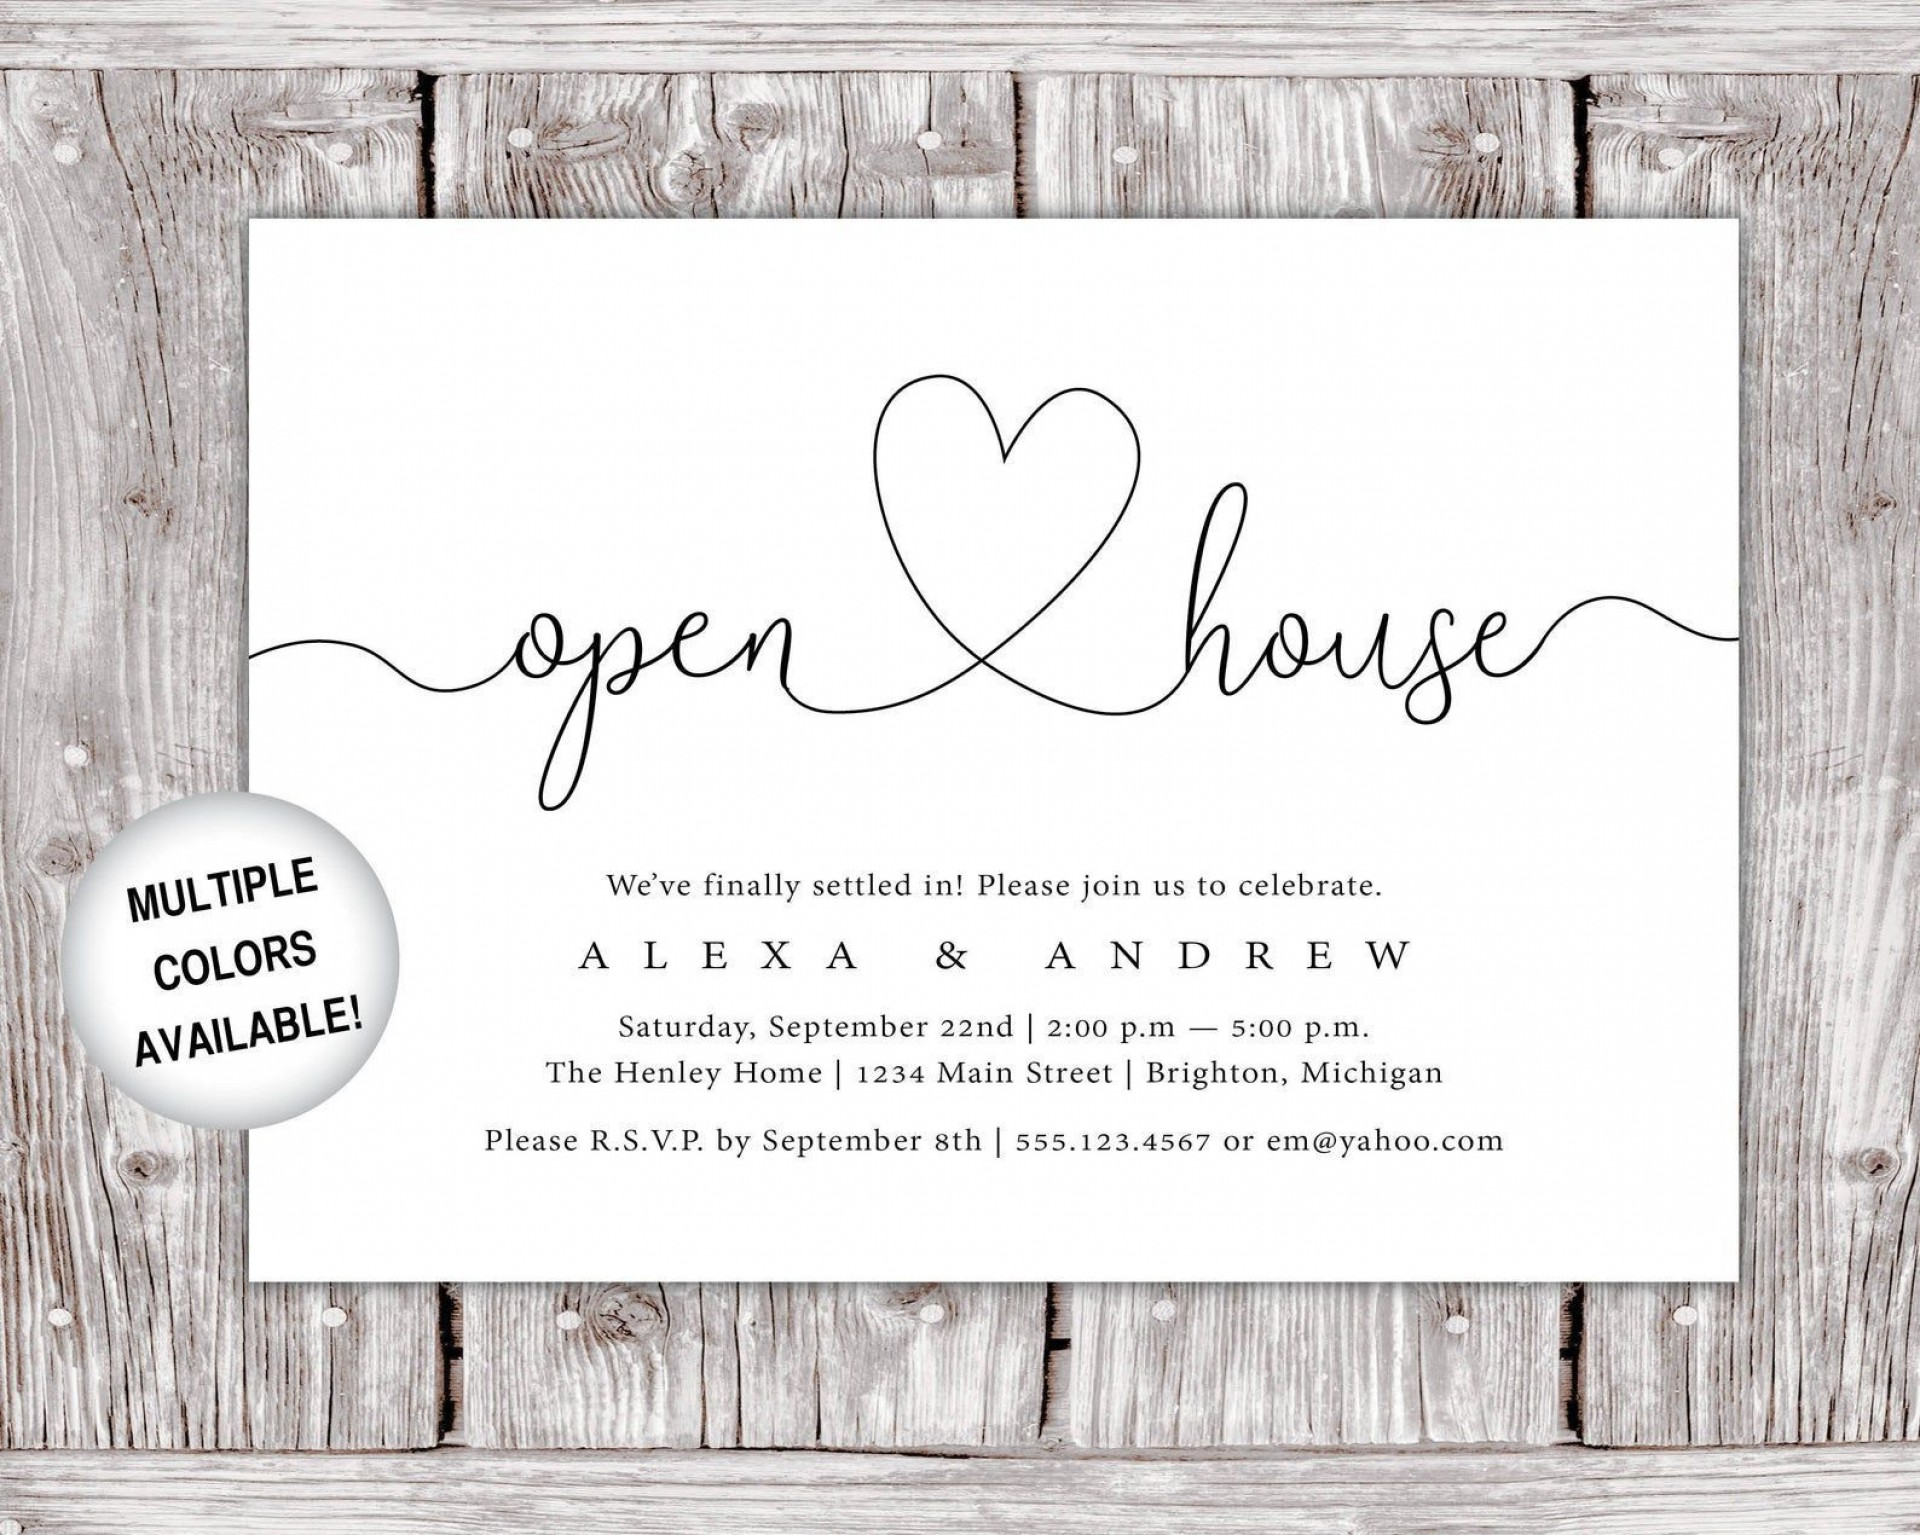 005 Incredible Open House Invitation Template High Def  Templates Free Printable Busines1920